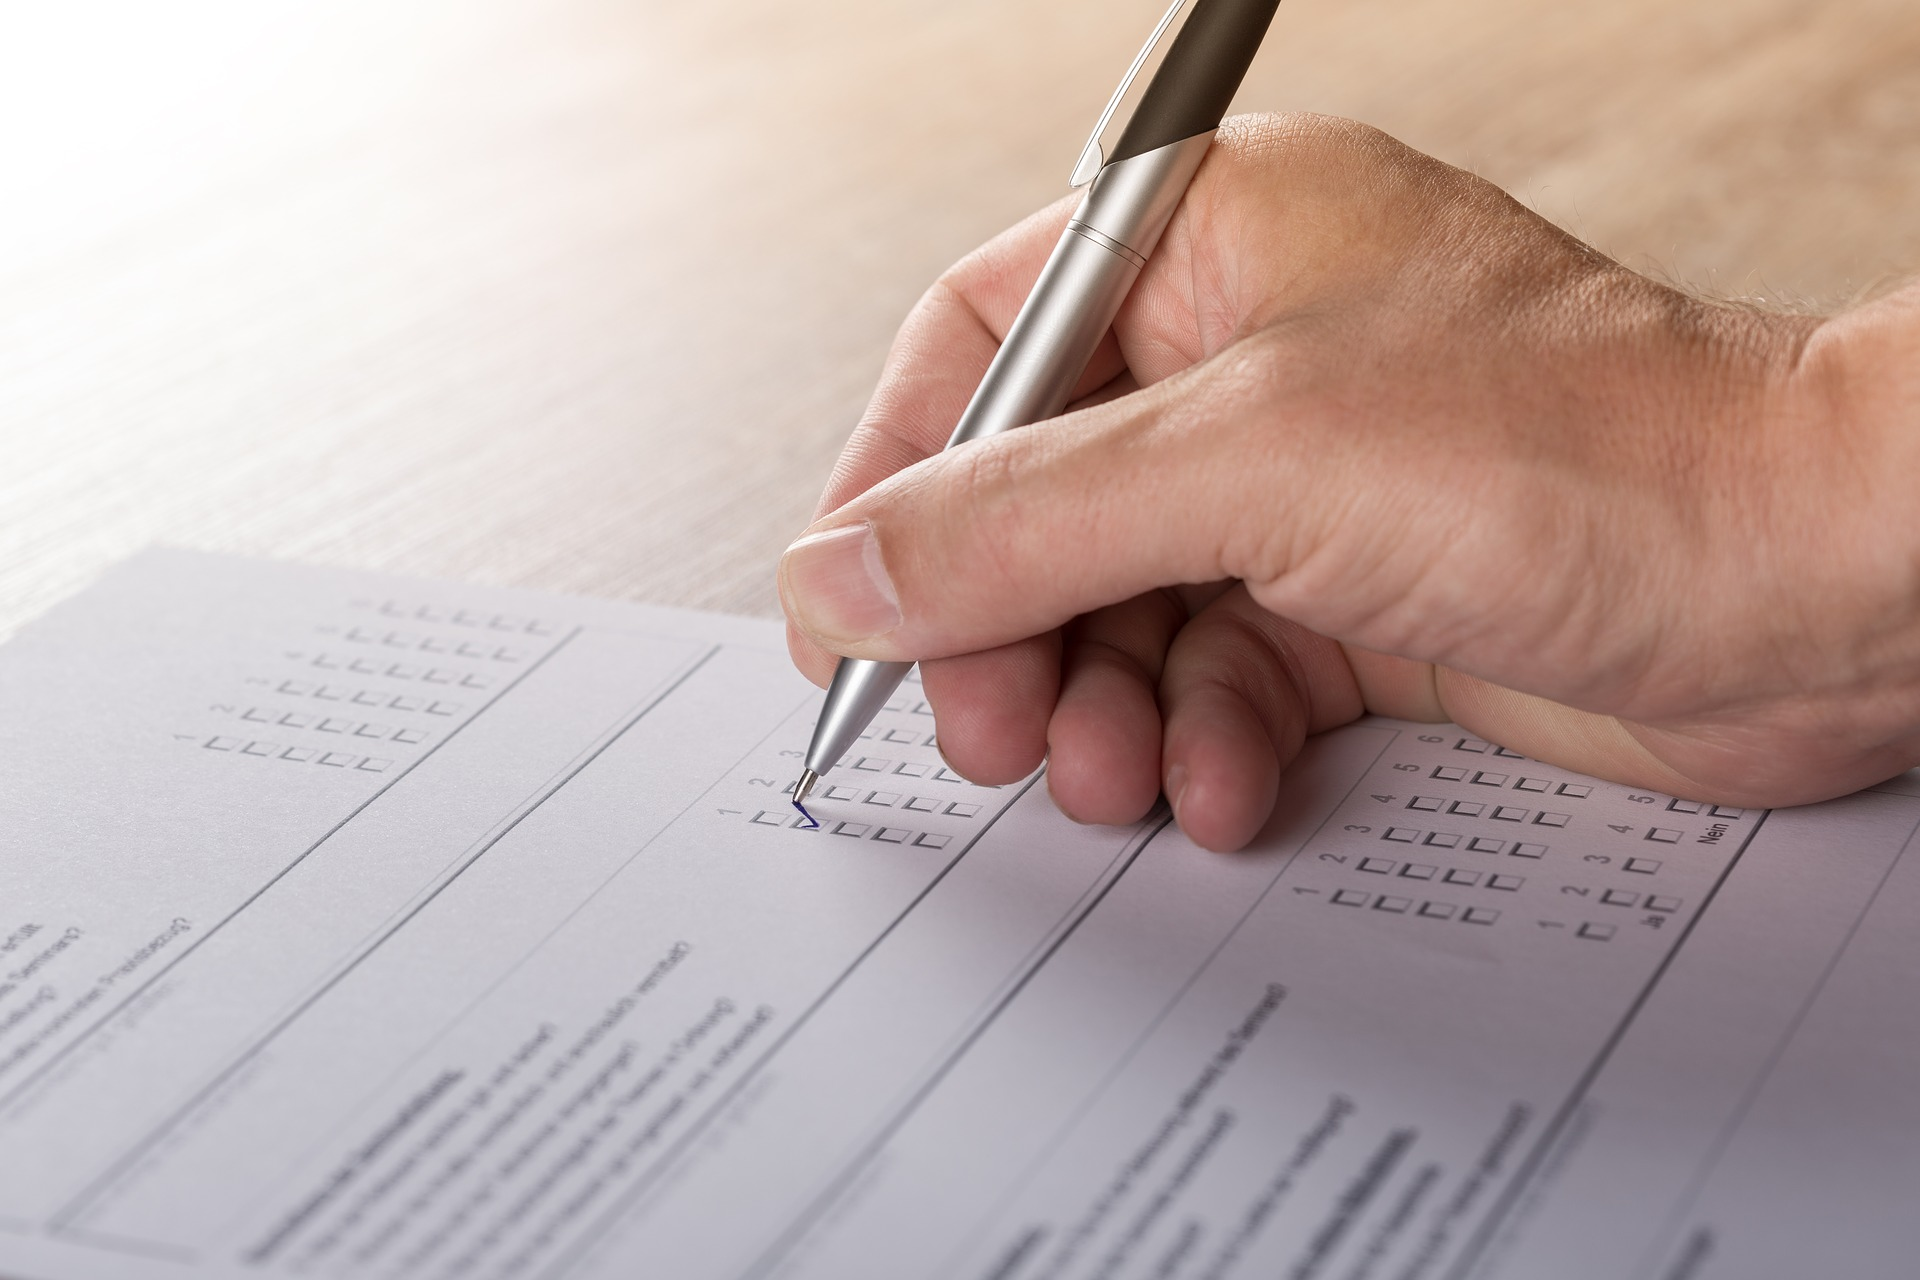 photo of hand filling out a survey